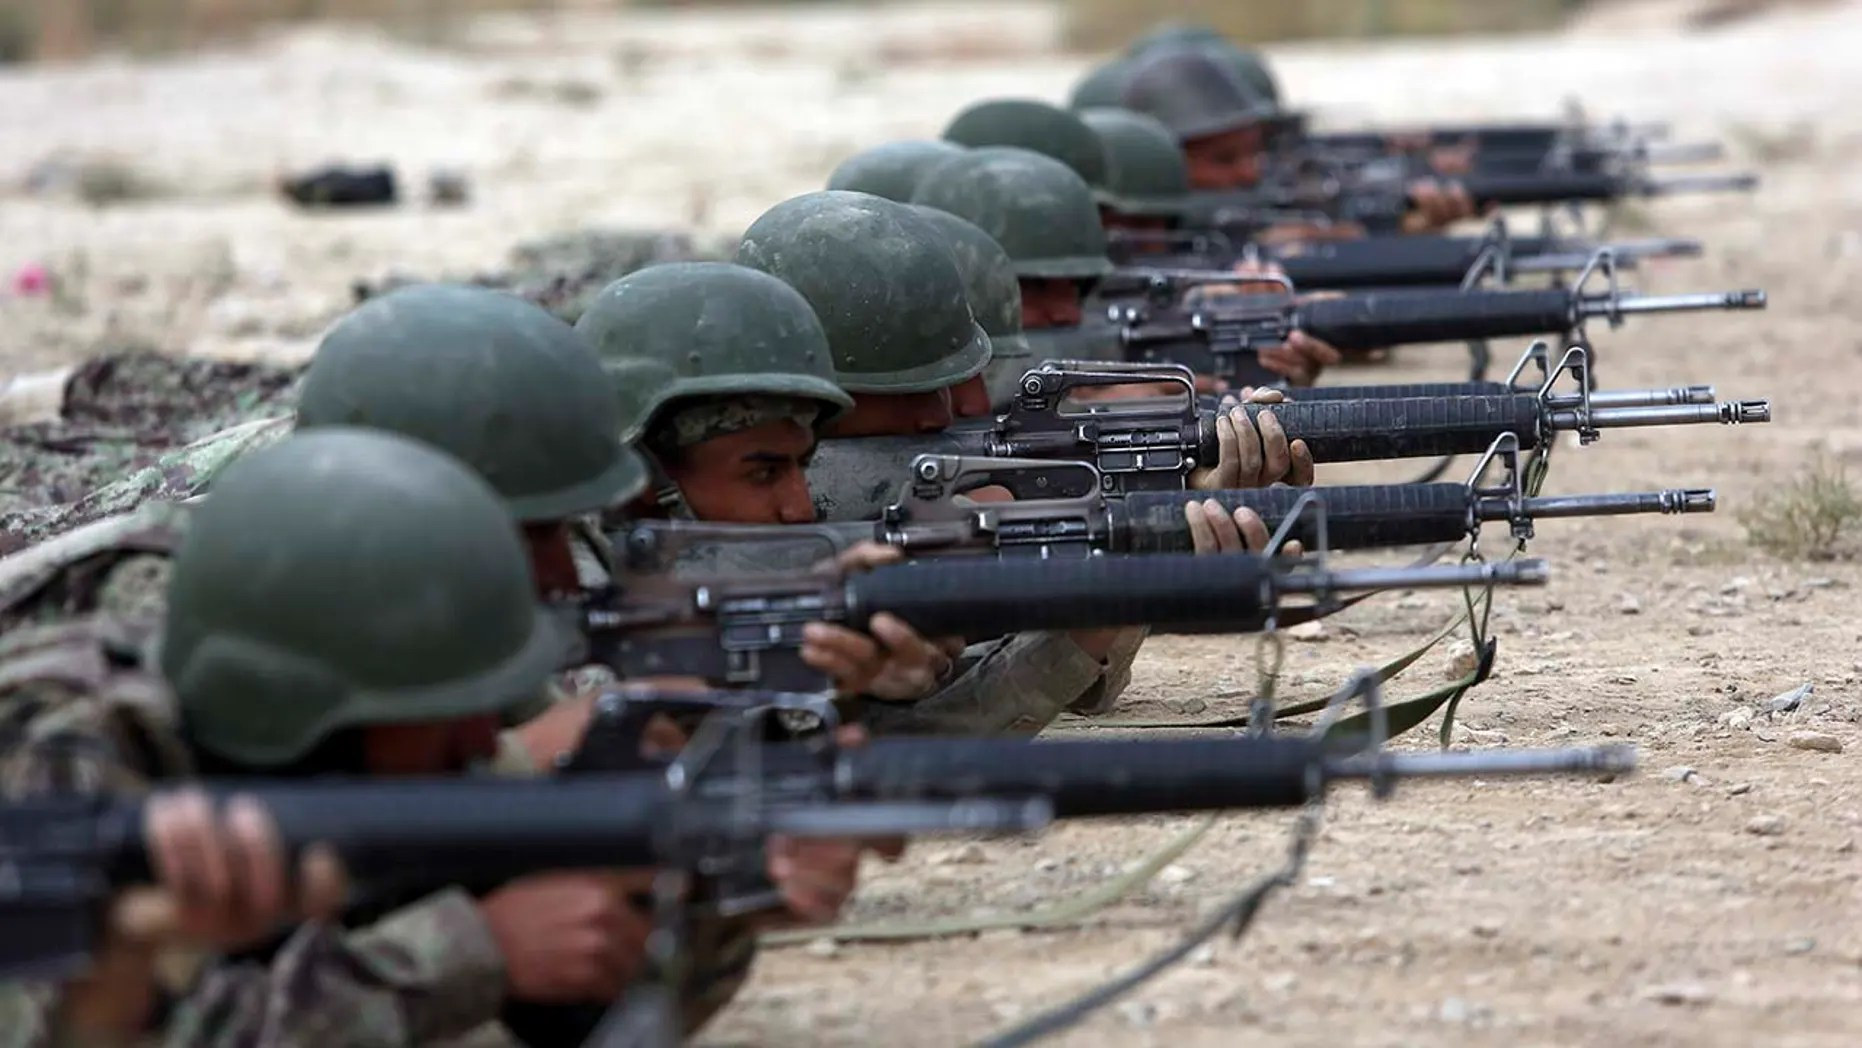 FILE - In this Oct. 31, 2018, file photo, Afghan National Army soldiers participate in a live fire training exercise, at the Afghan Military Academy, in Kabul, Afghanistan. (Associated Press)